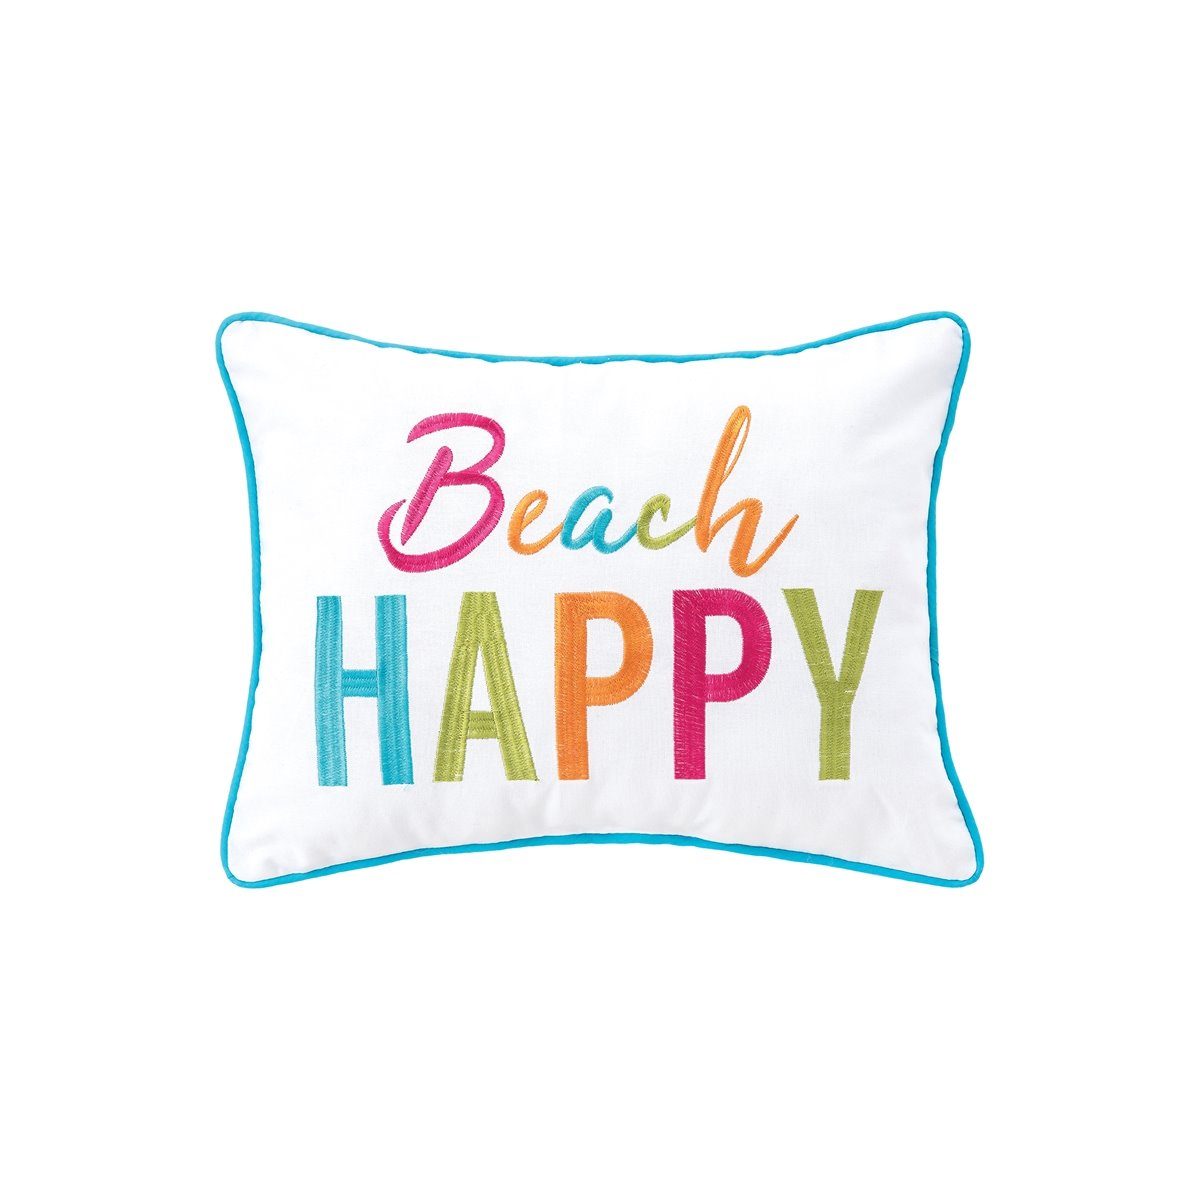 Beach Happy Embroidered Pillow